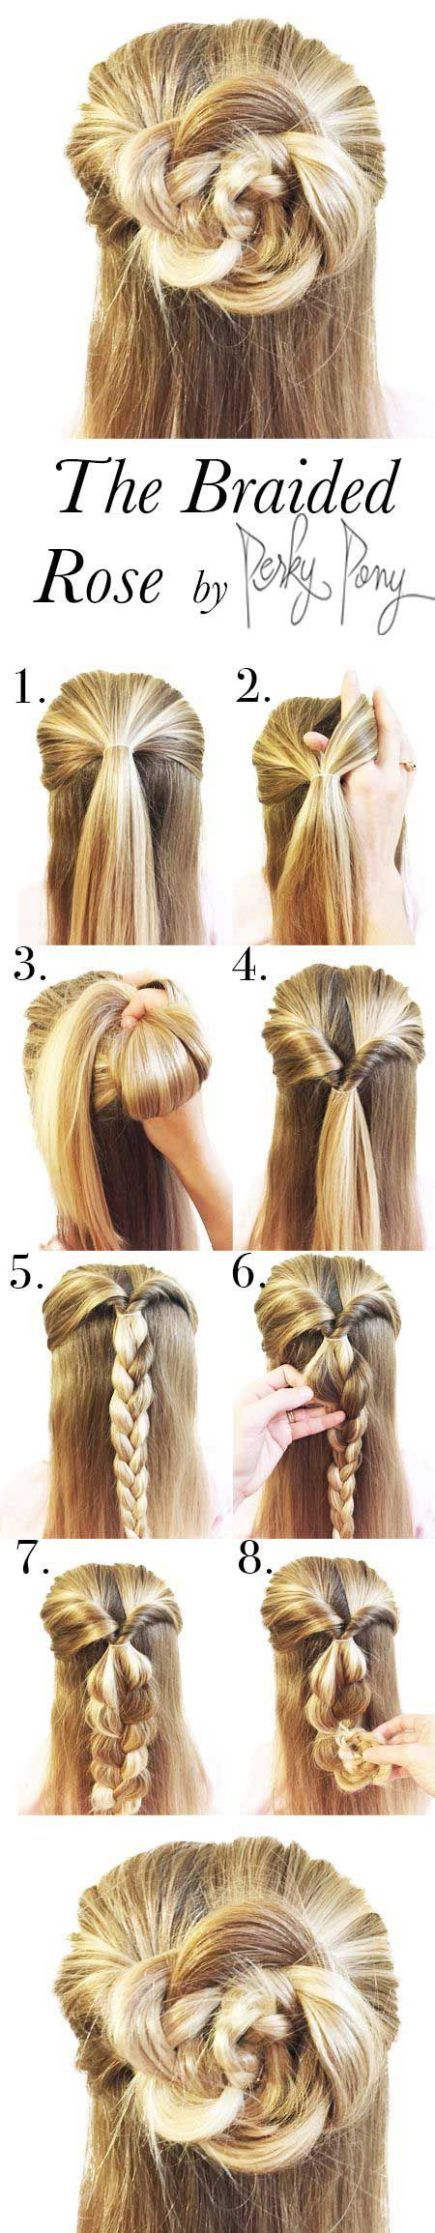 Easy Half up Half down Hairstyles: THE BRAIDED ROSE